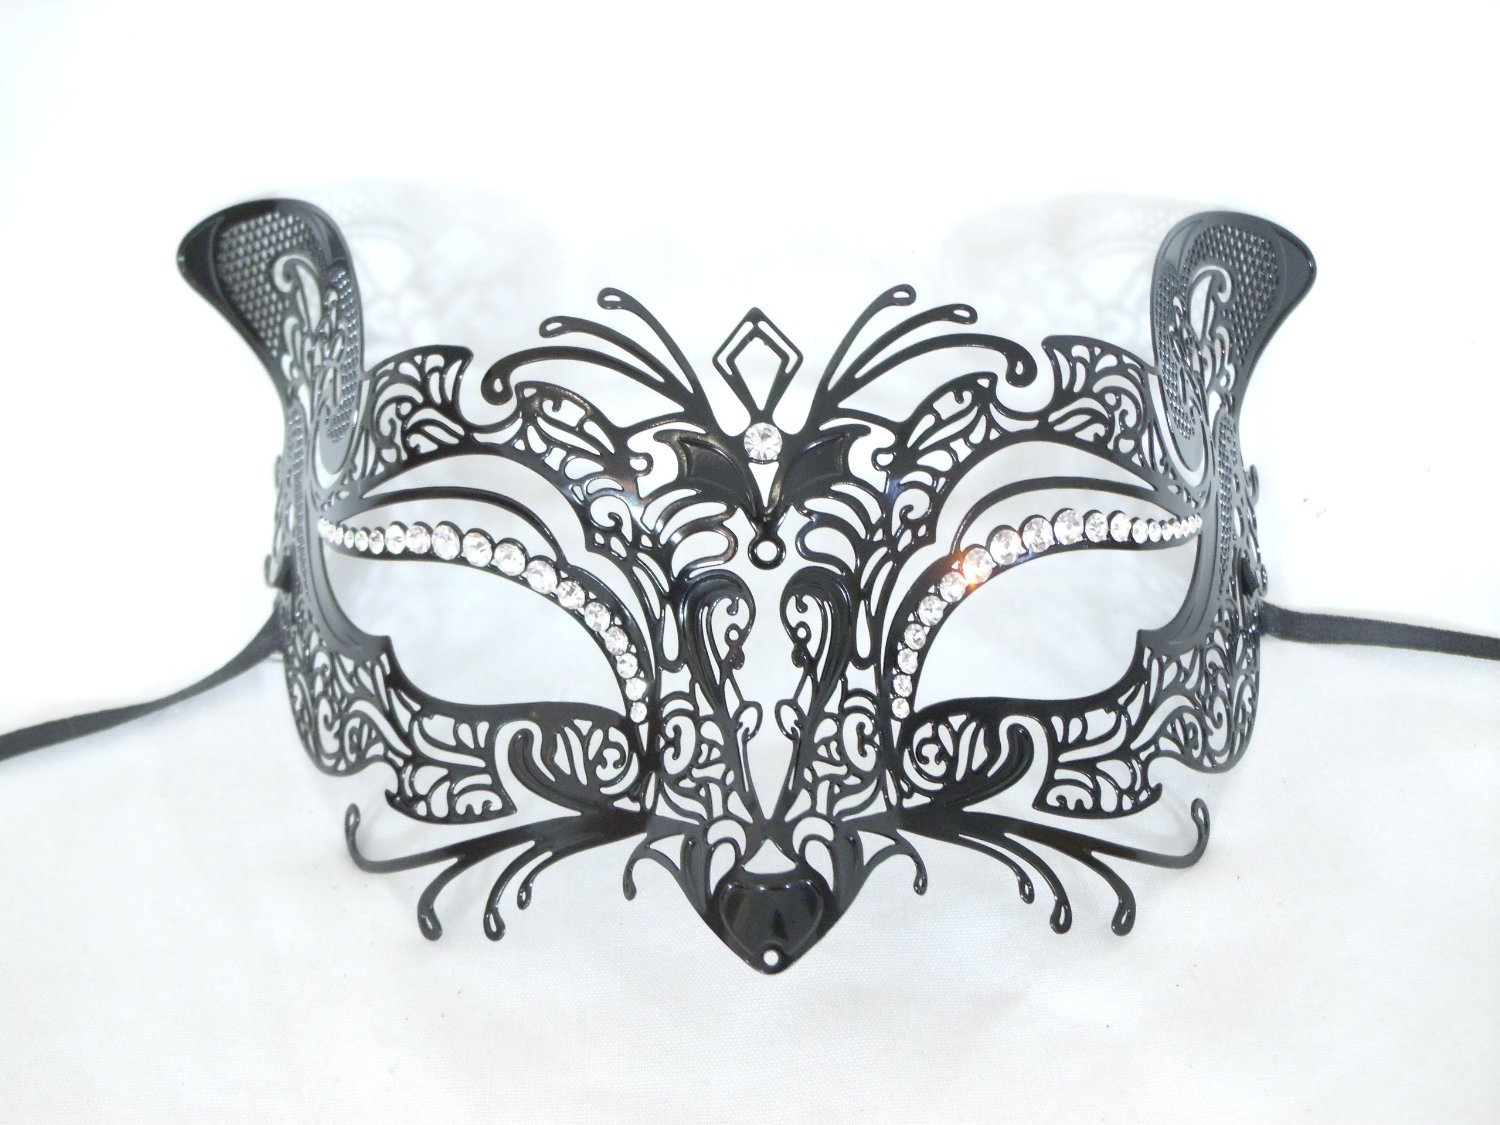 Black Laser Cut Metal Authentic Venetian Cat Masquerade Mask